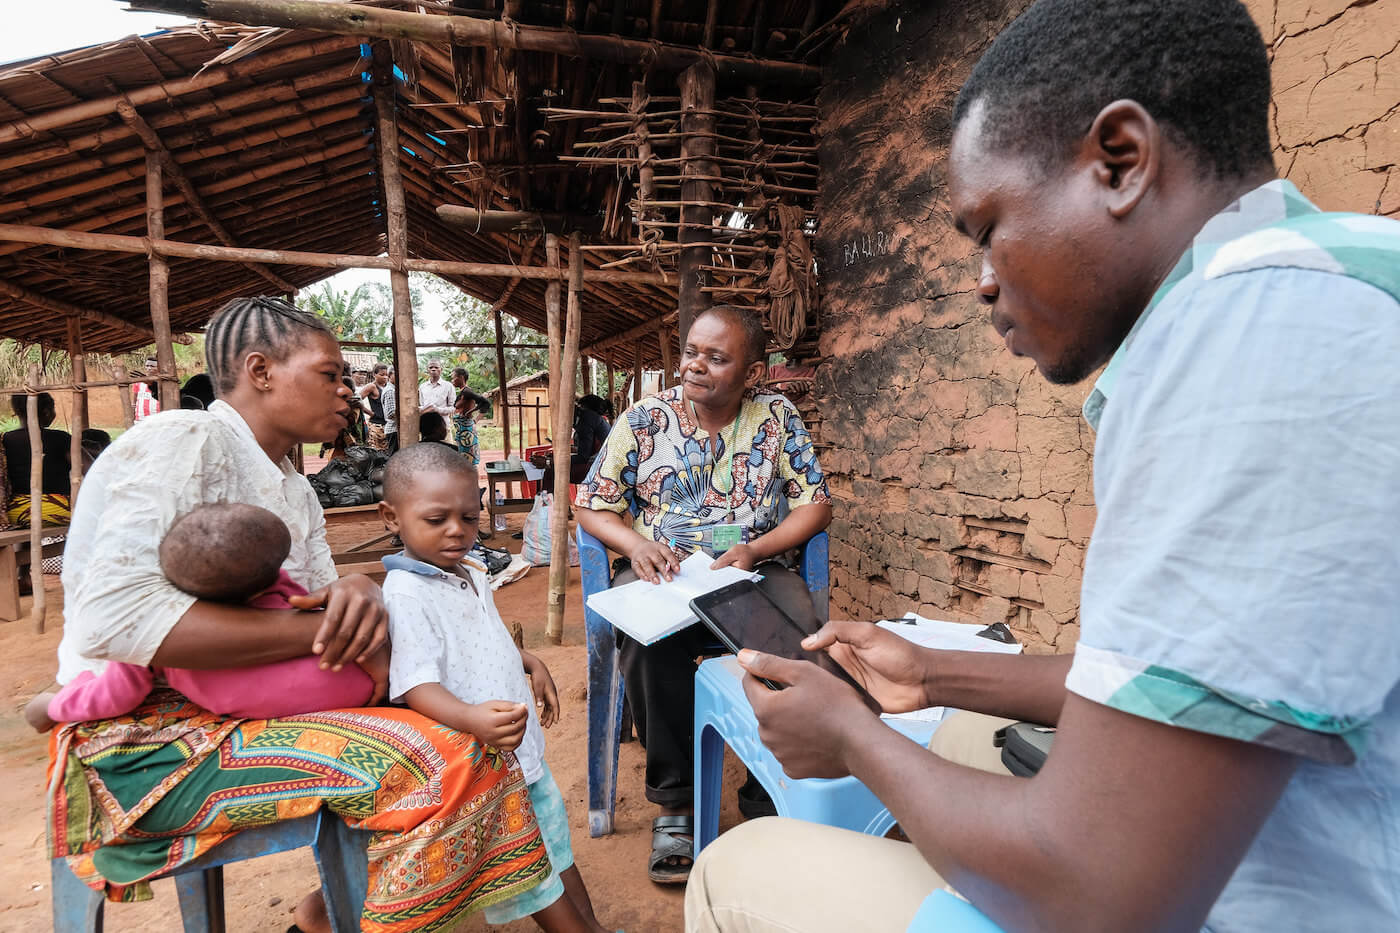 A mother and her child being interviewed by two community health workers.